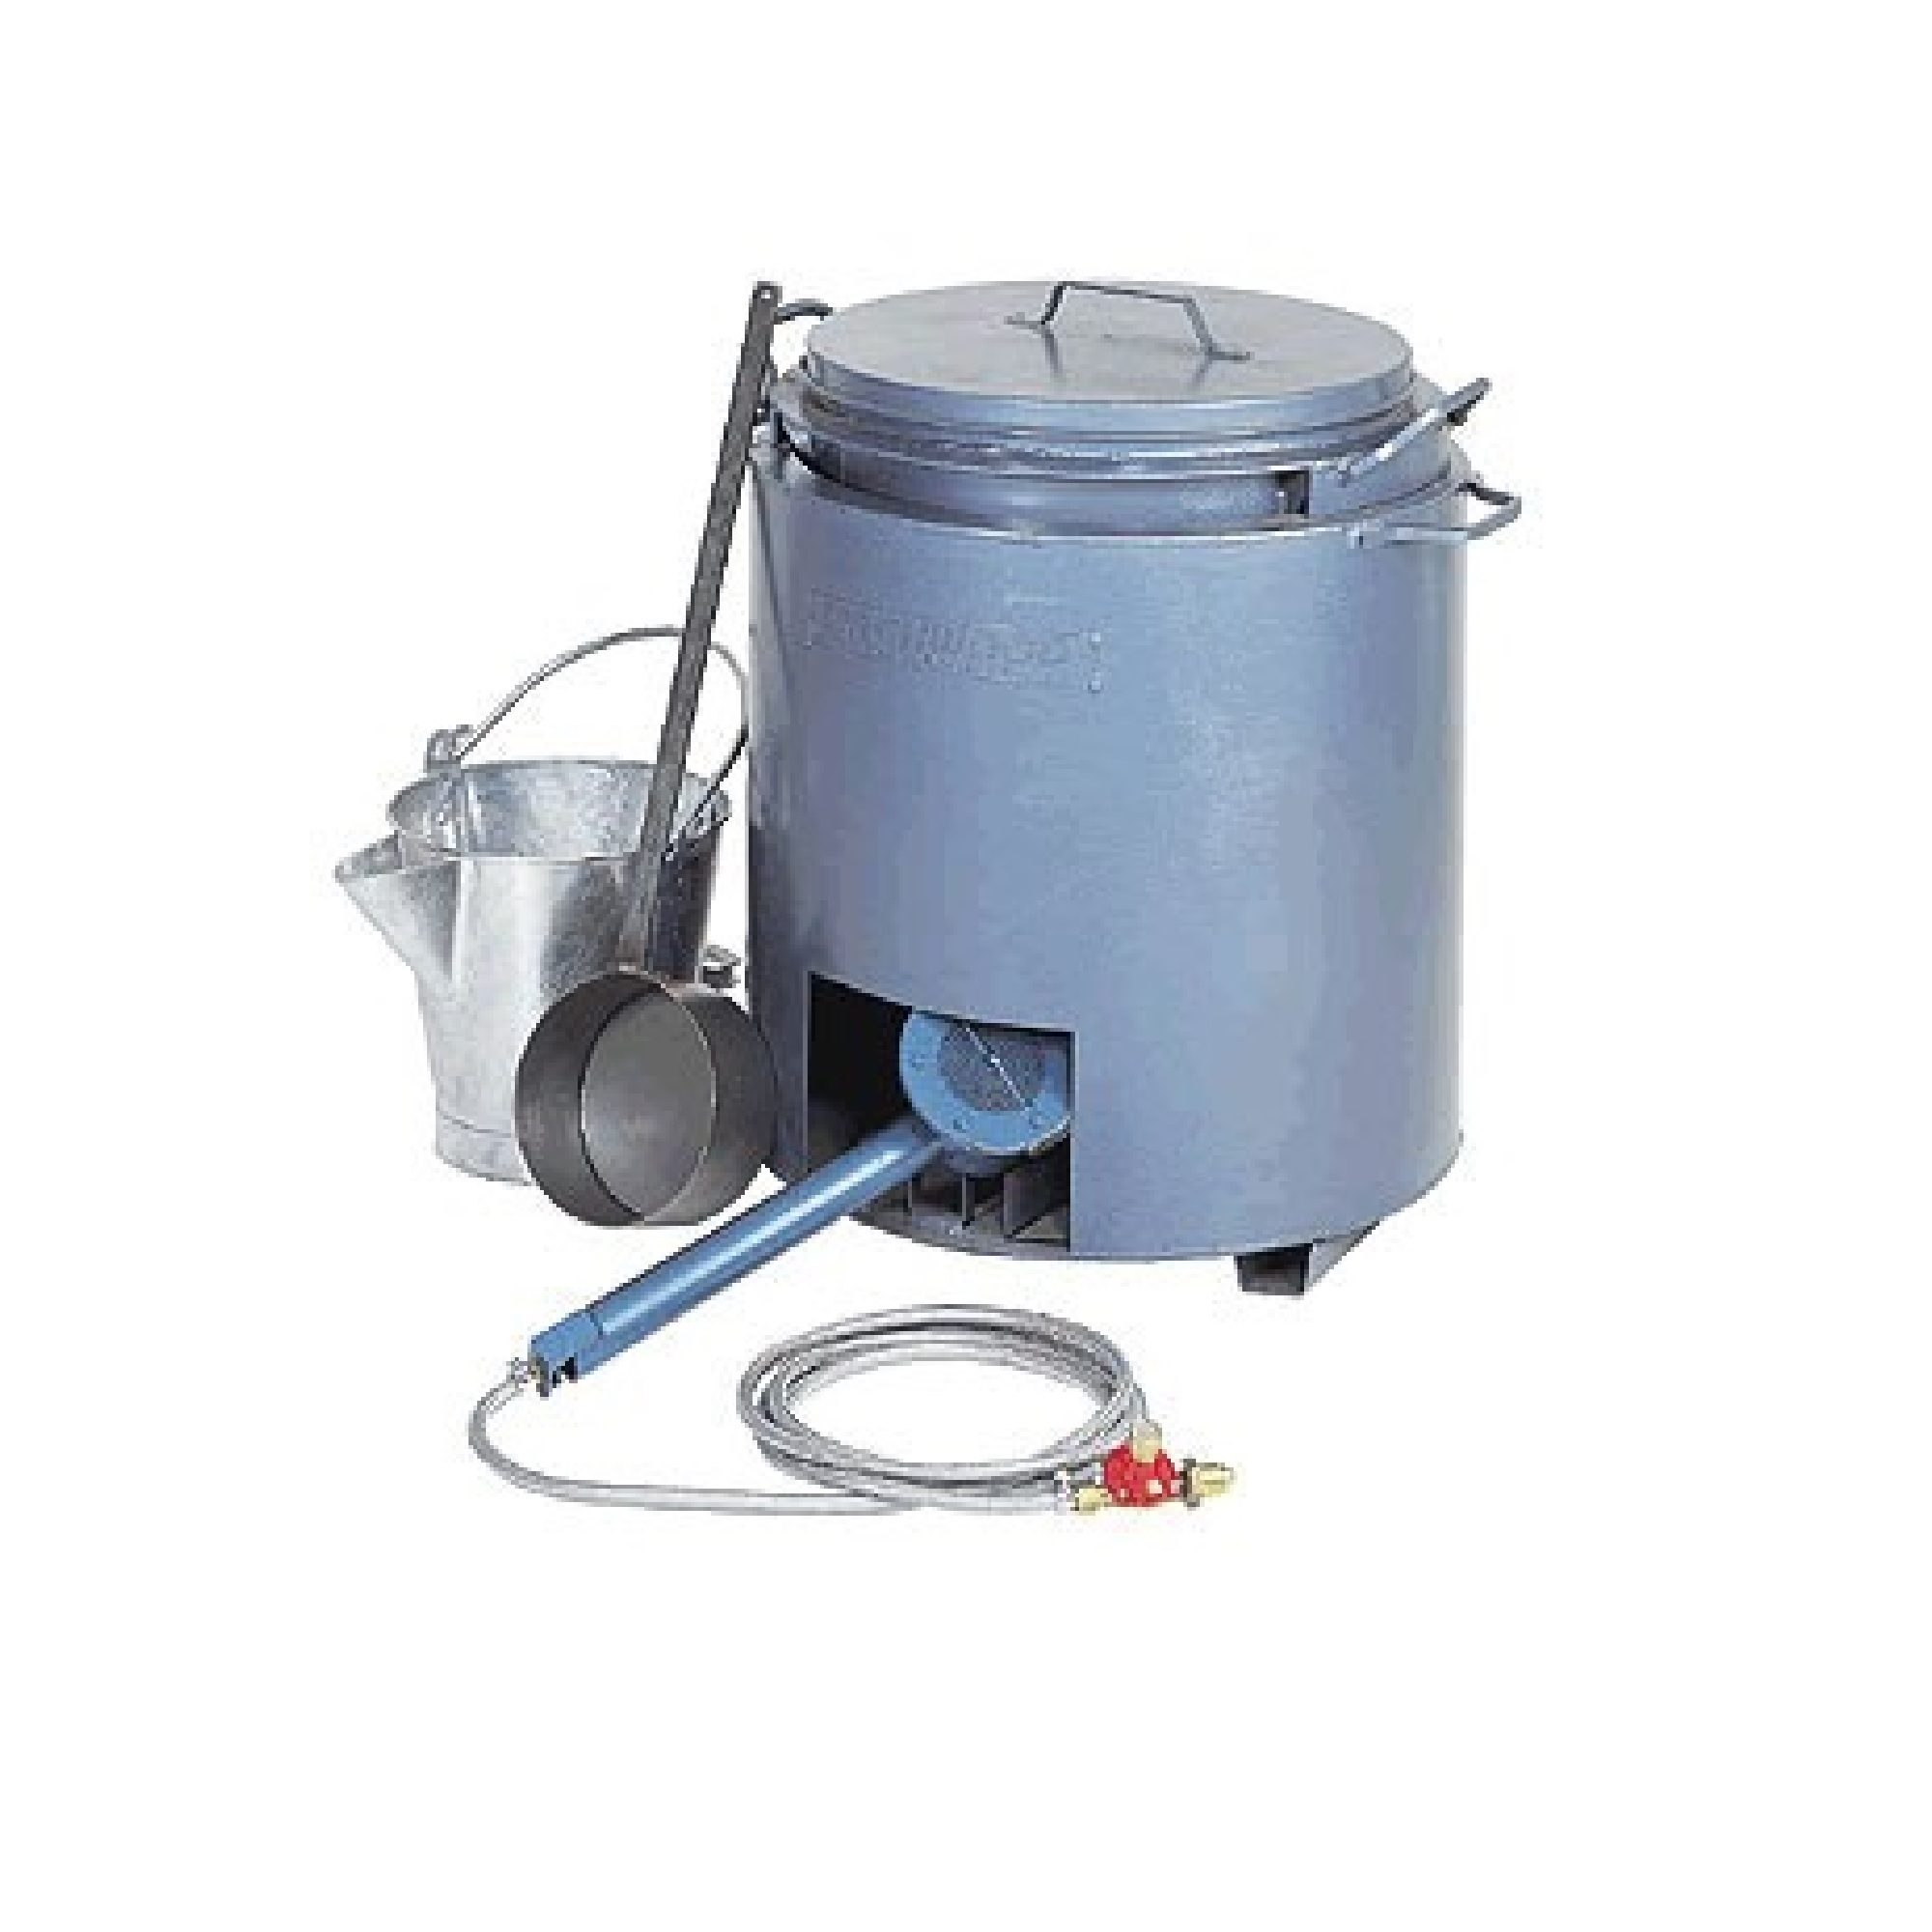 10 gallon tar boiler kit including impact burner, gas regulator, armoured hose, ladle and steel 'V' lip bucket